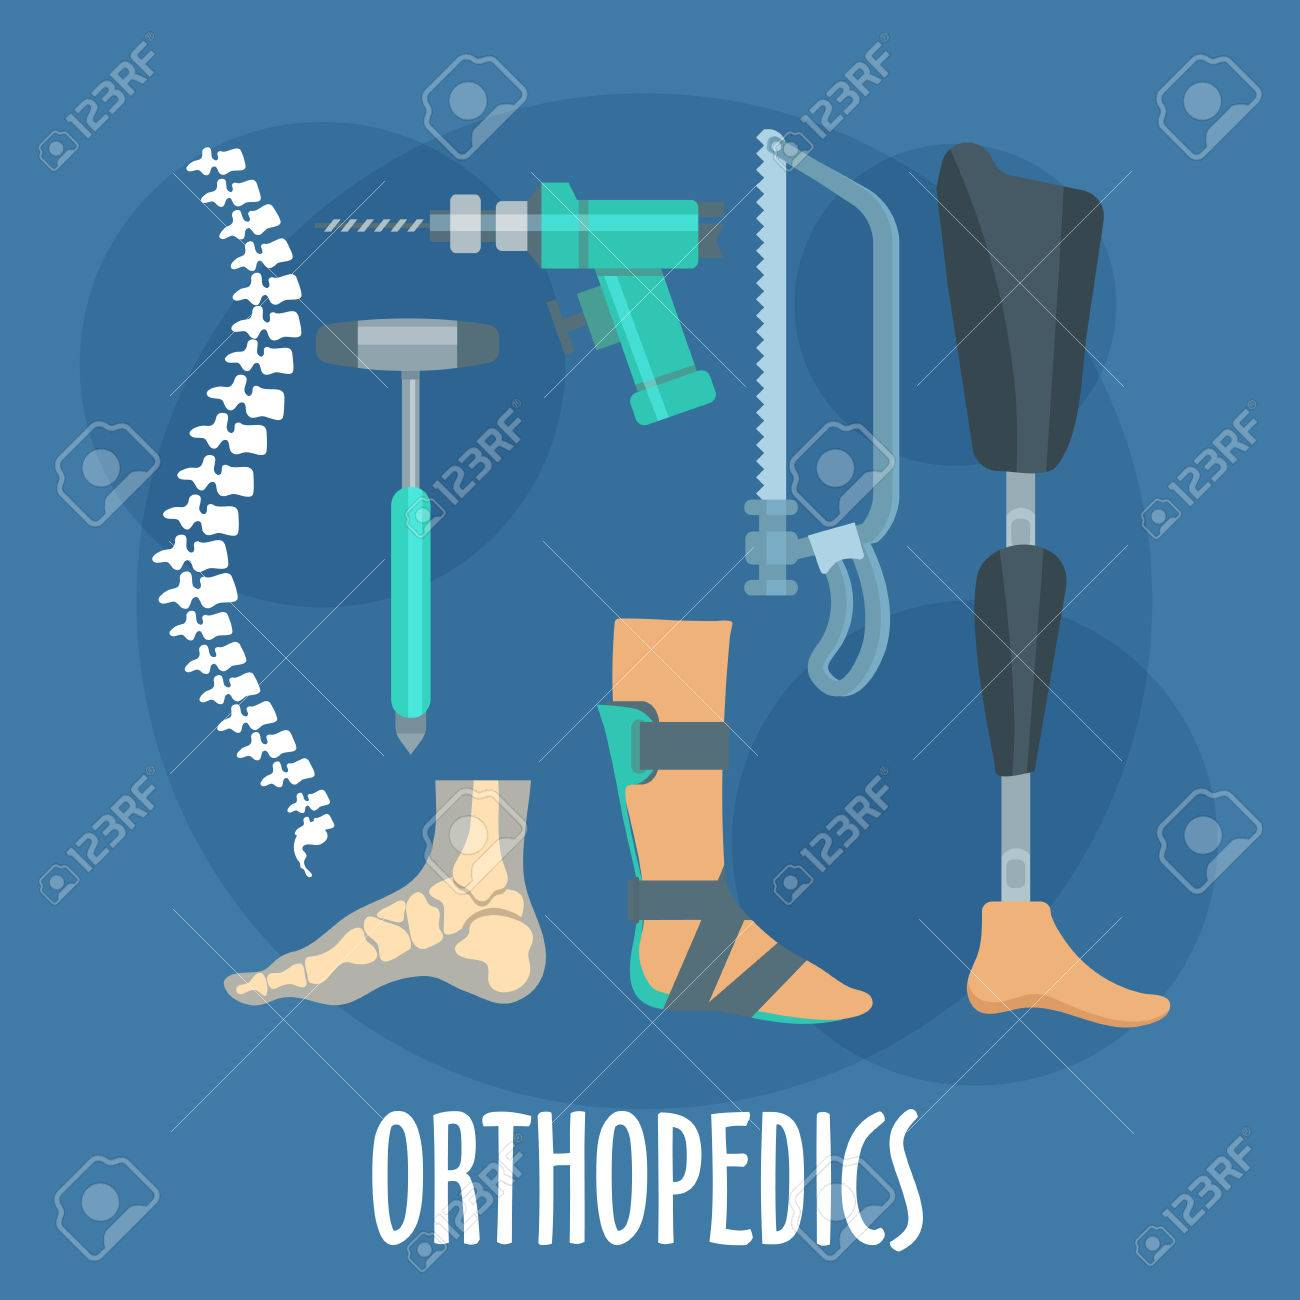 Orthopedics and prosthetics medicine symbol for orthopaedic clinic design usage with bones of vertebral column and foot, prosthetic leg and ankle foot orthosis, charriere bone saw, bone drill and medical hammer. Flat style - 58721374